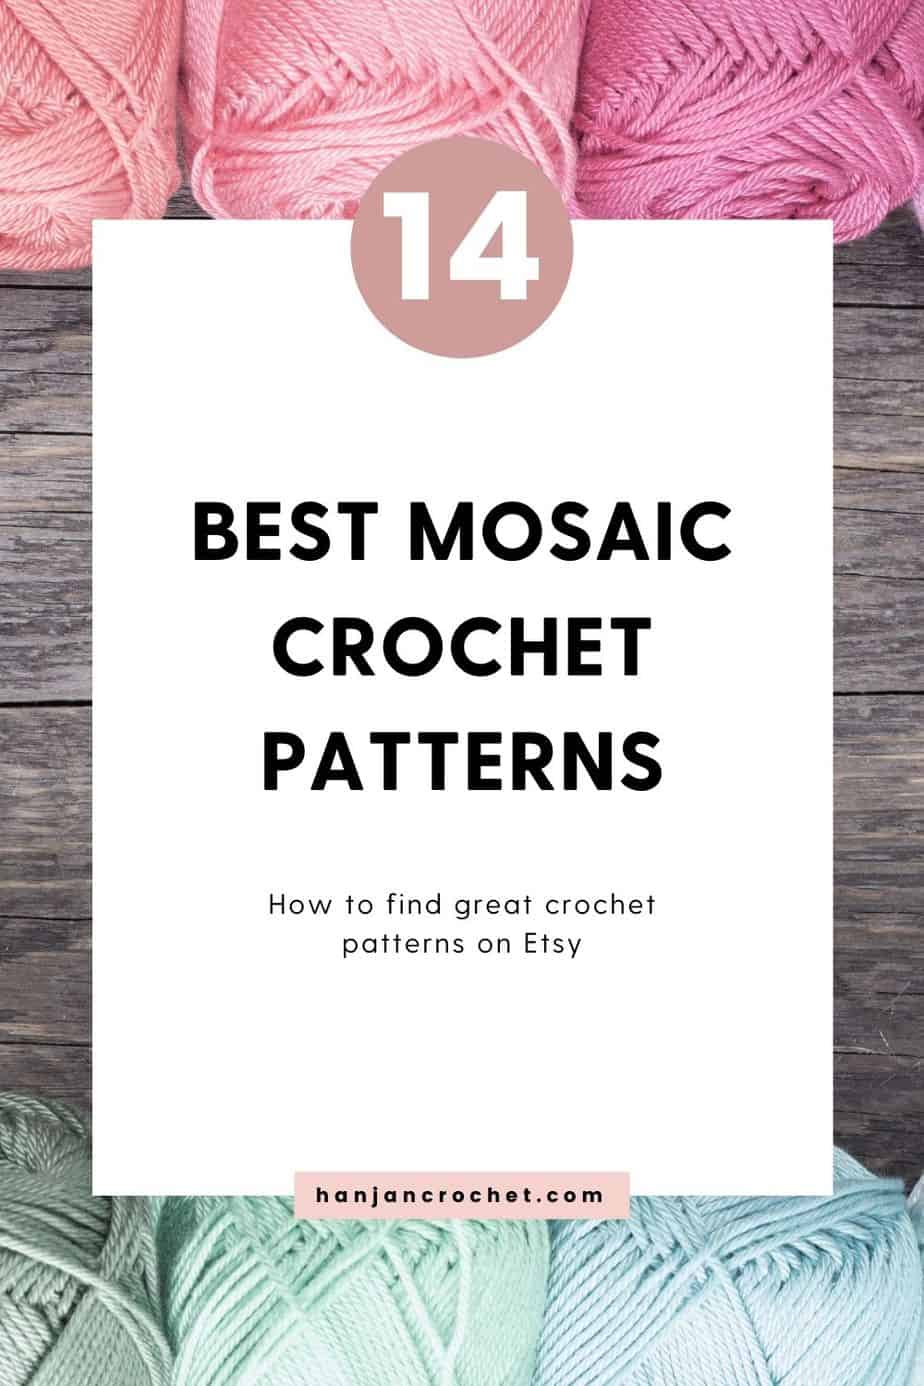 balls of yarn with text saying 14 best mosaic crochet patterns on Etsy